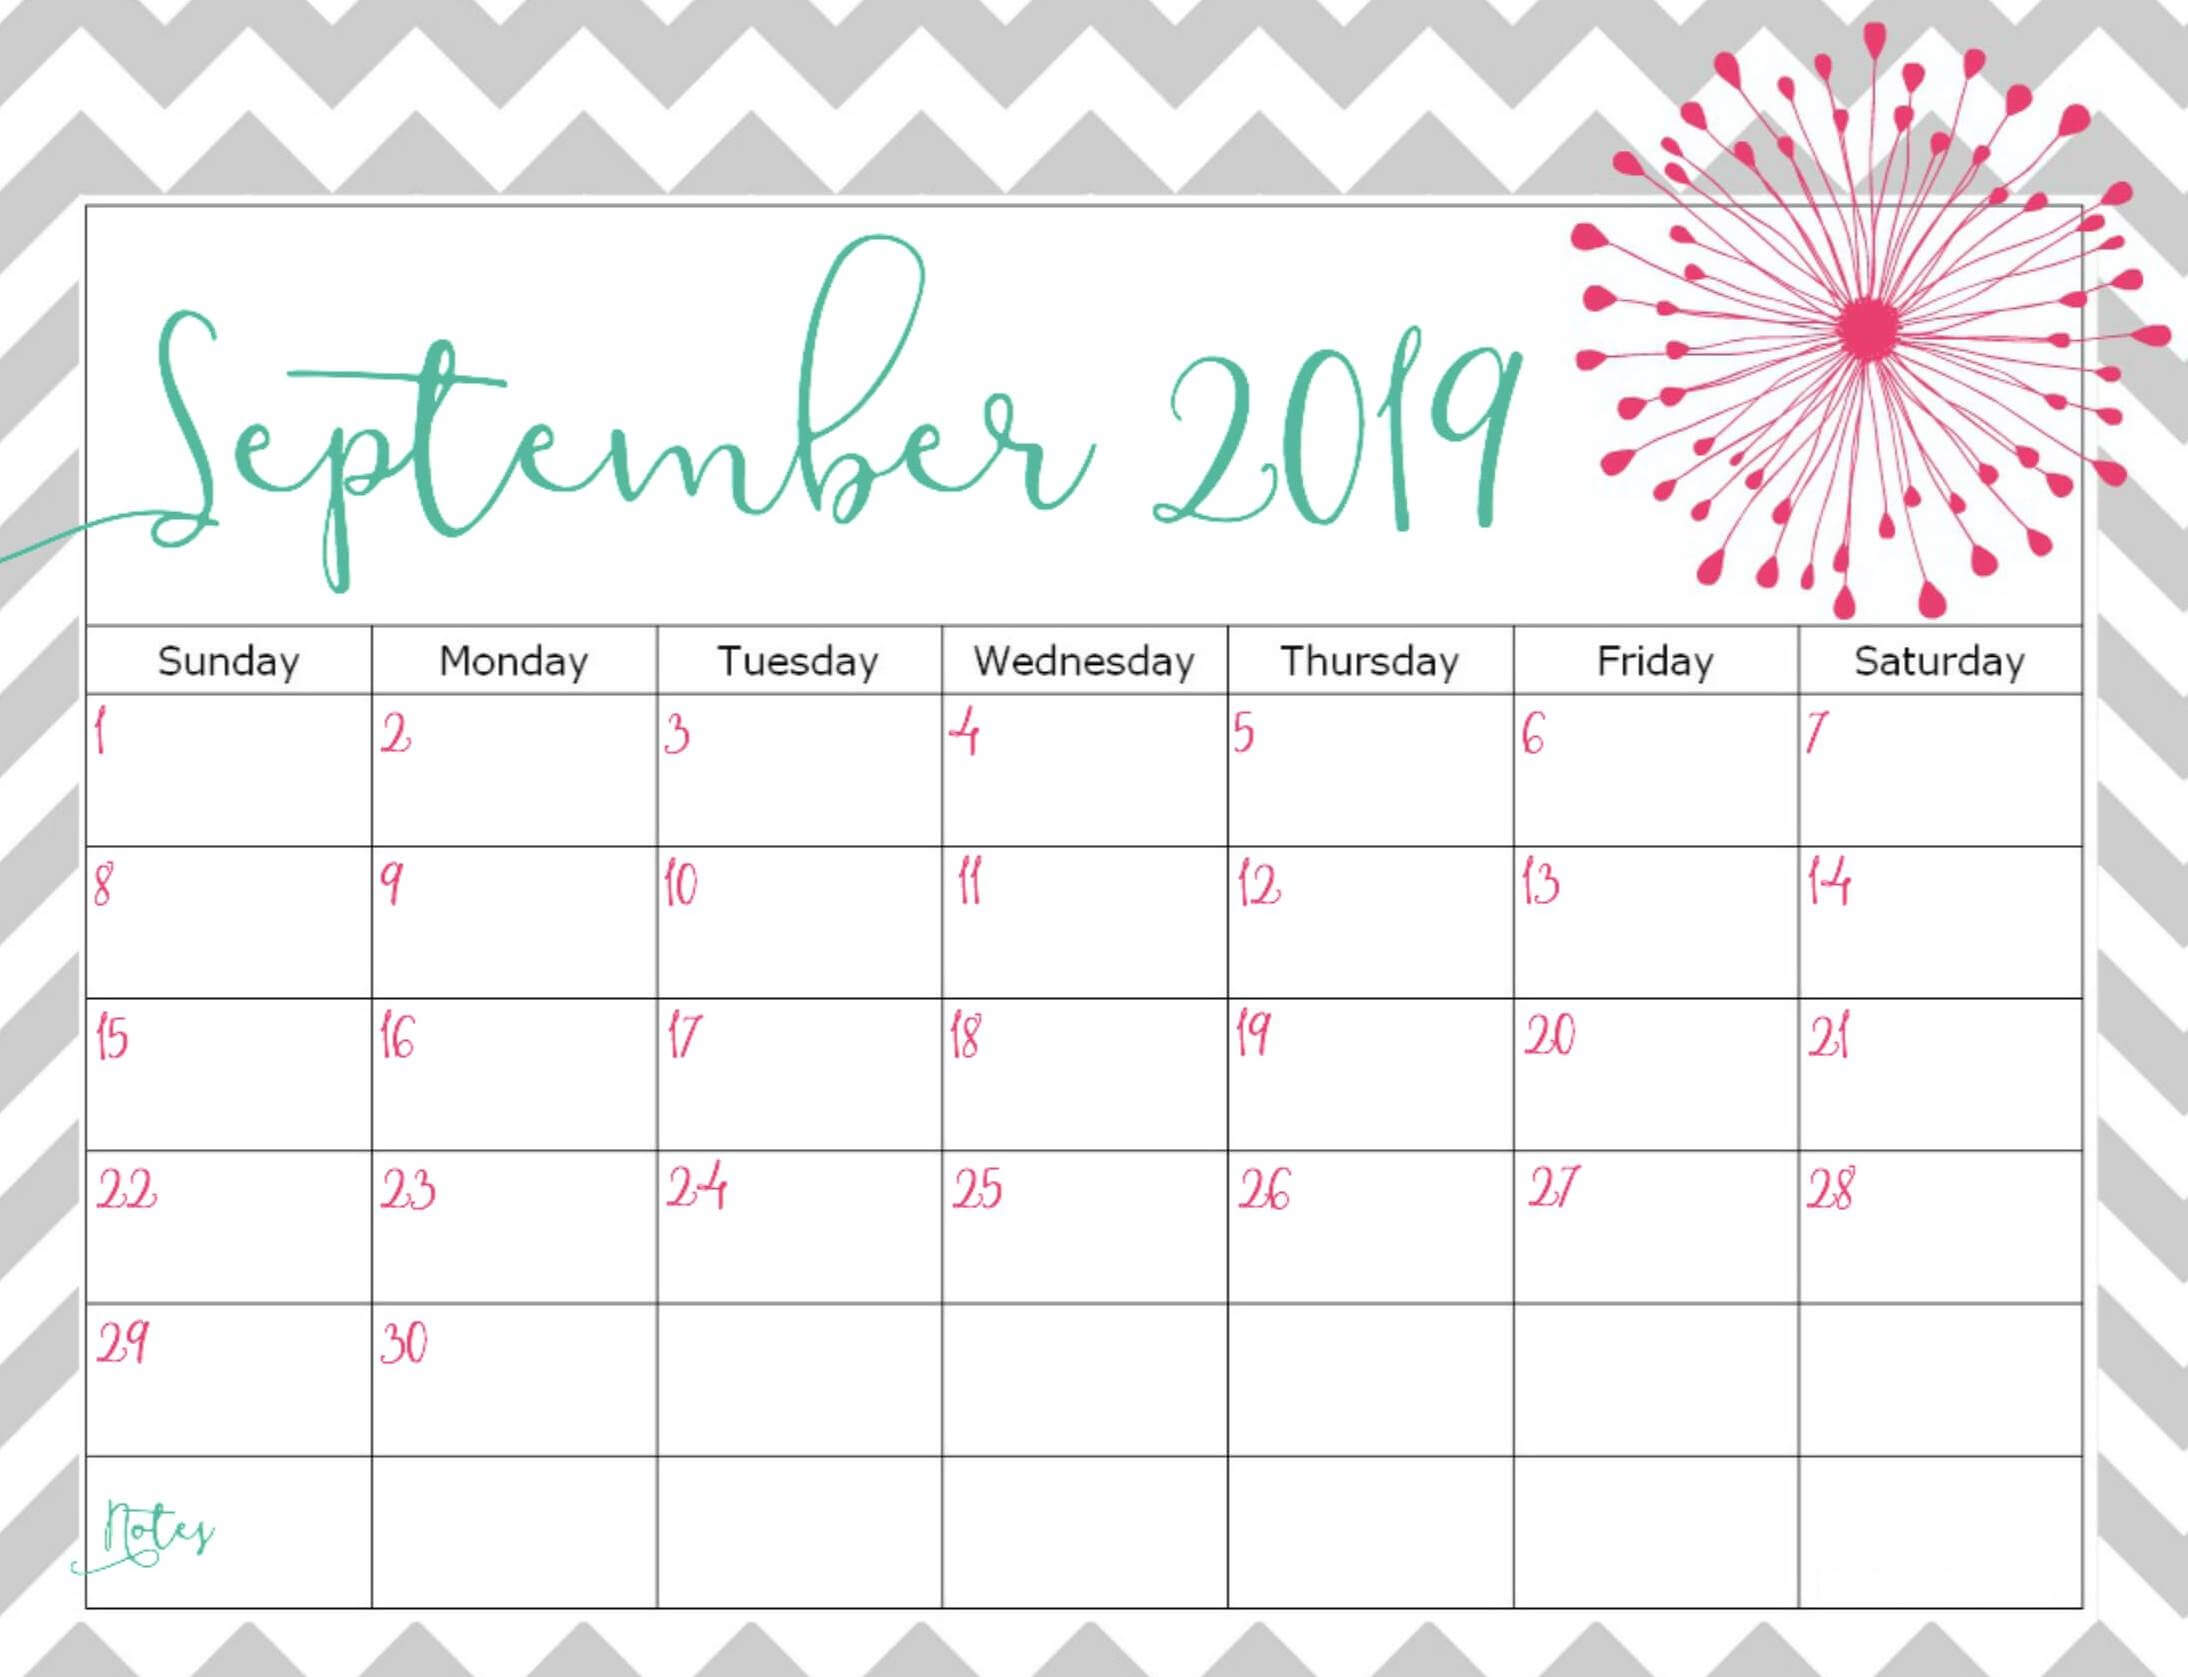 photo about Free Printable September Calendar referred to as Floral Lovable September 2019 Calendar Printable Template